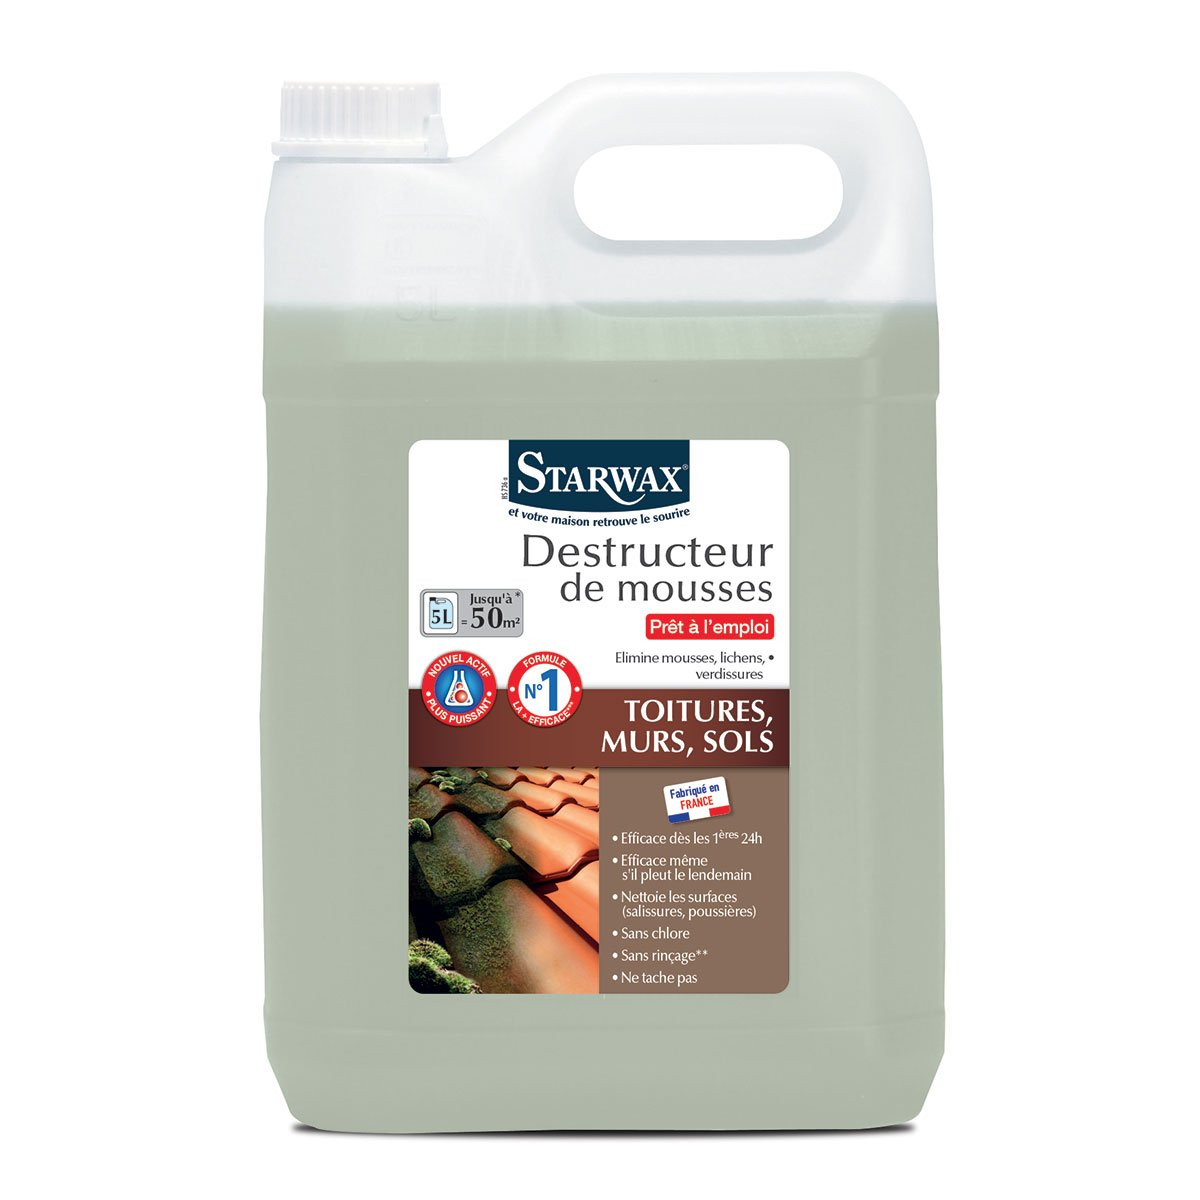 Destructeur mousse starwax 5L